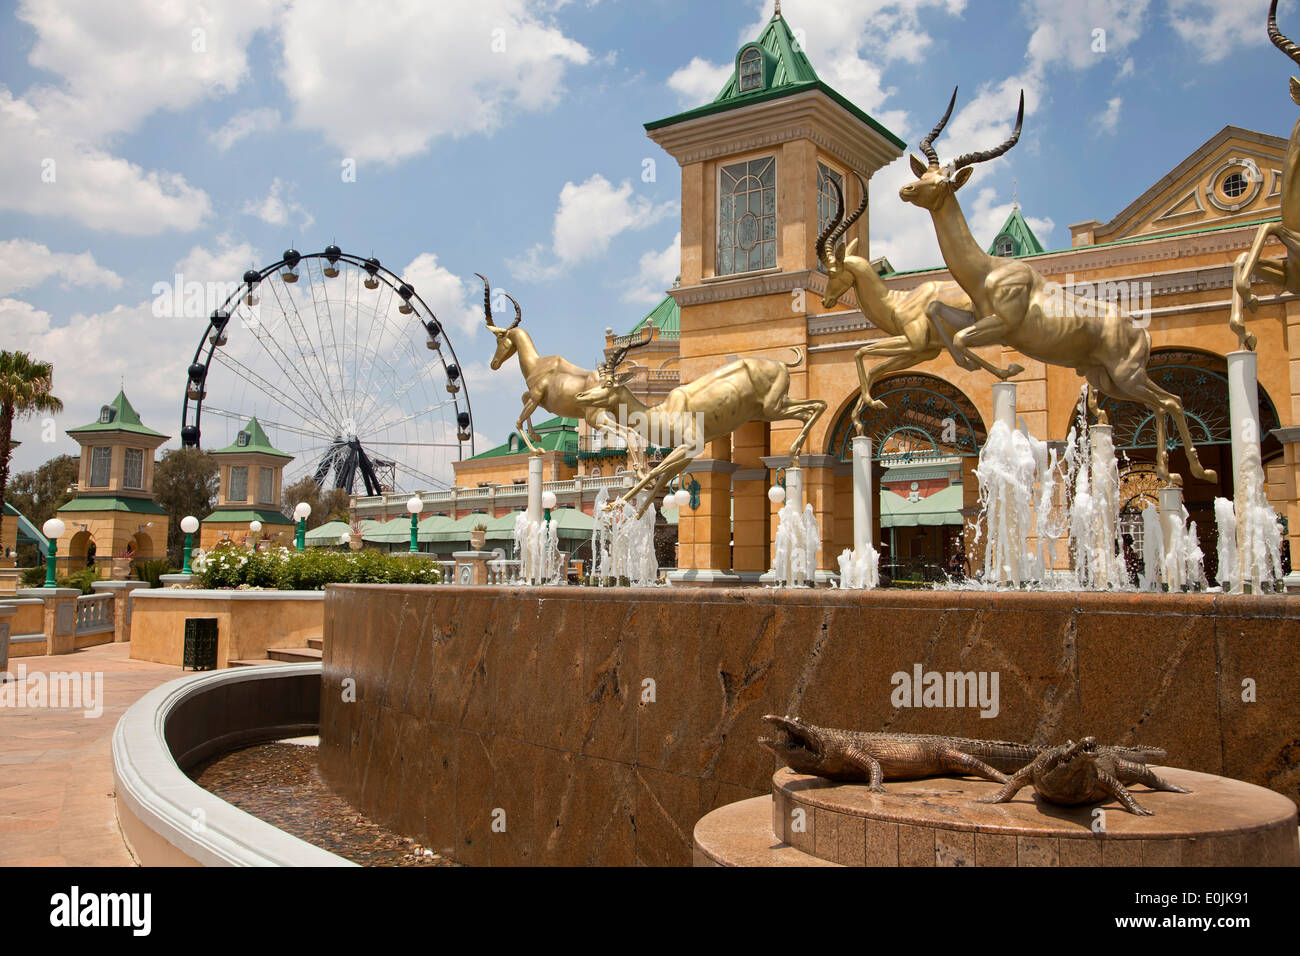 Gold Reef City Casino and Hotel in Johannesburg, Gauteng, South Africa, Africa - Stock Image